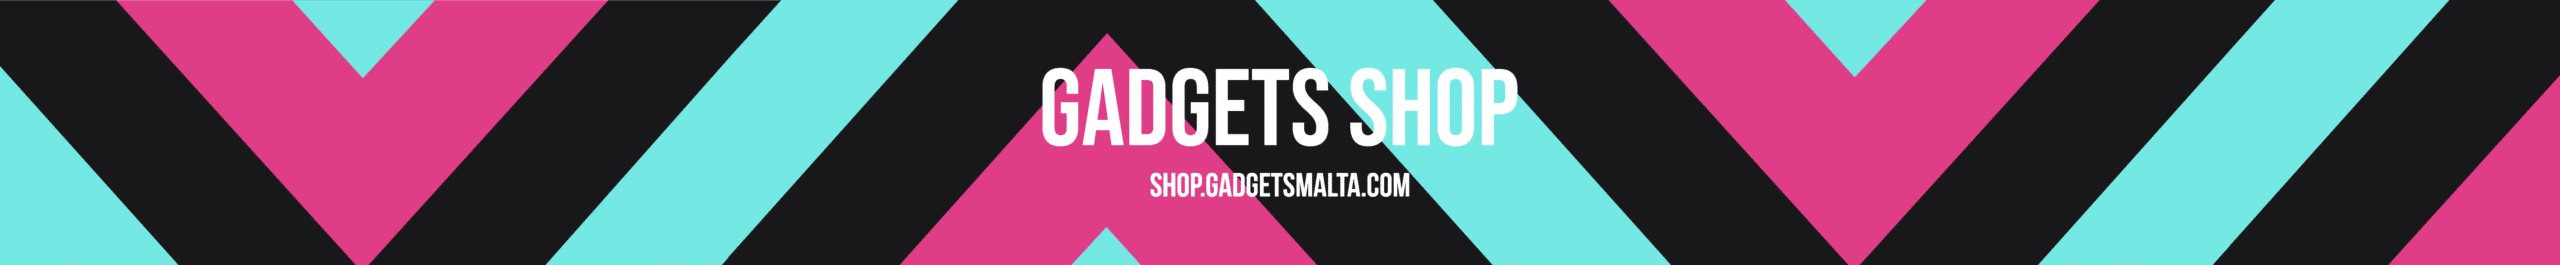 Gadgets Shop Web Banner Launch